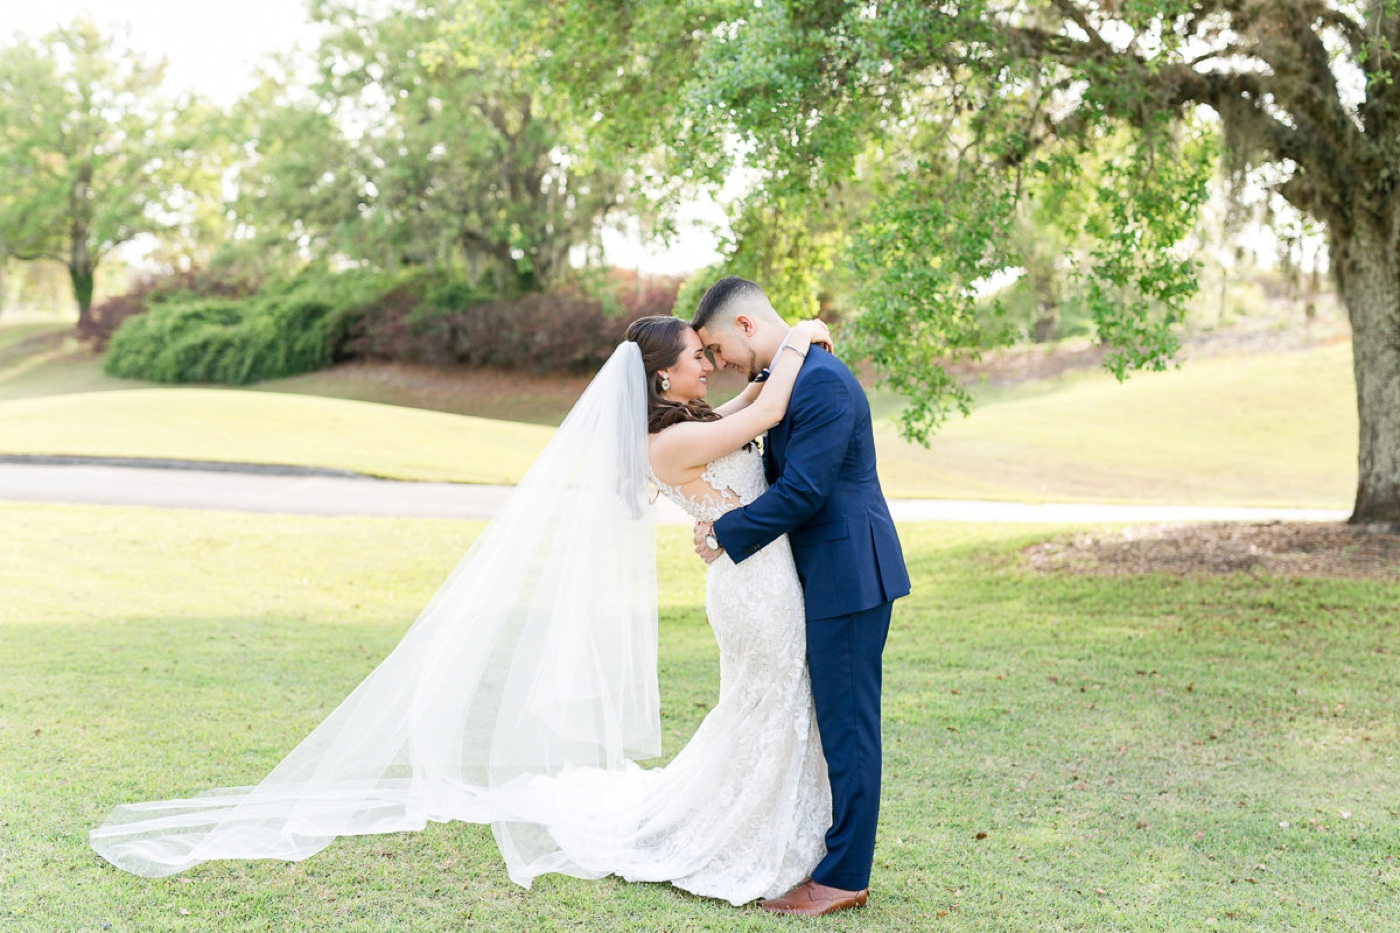 orlando wedding venue ideas